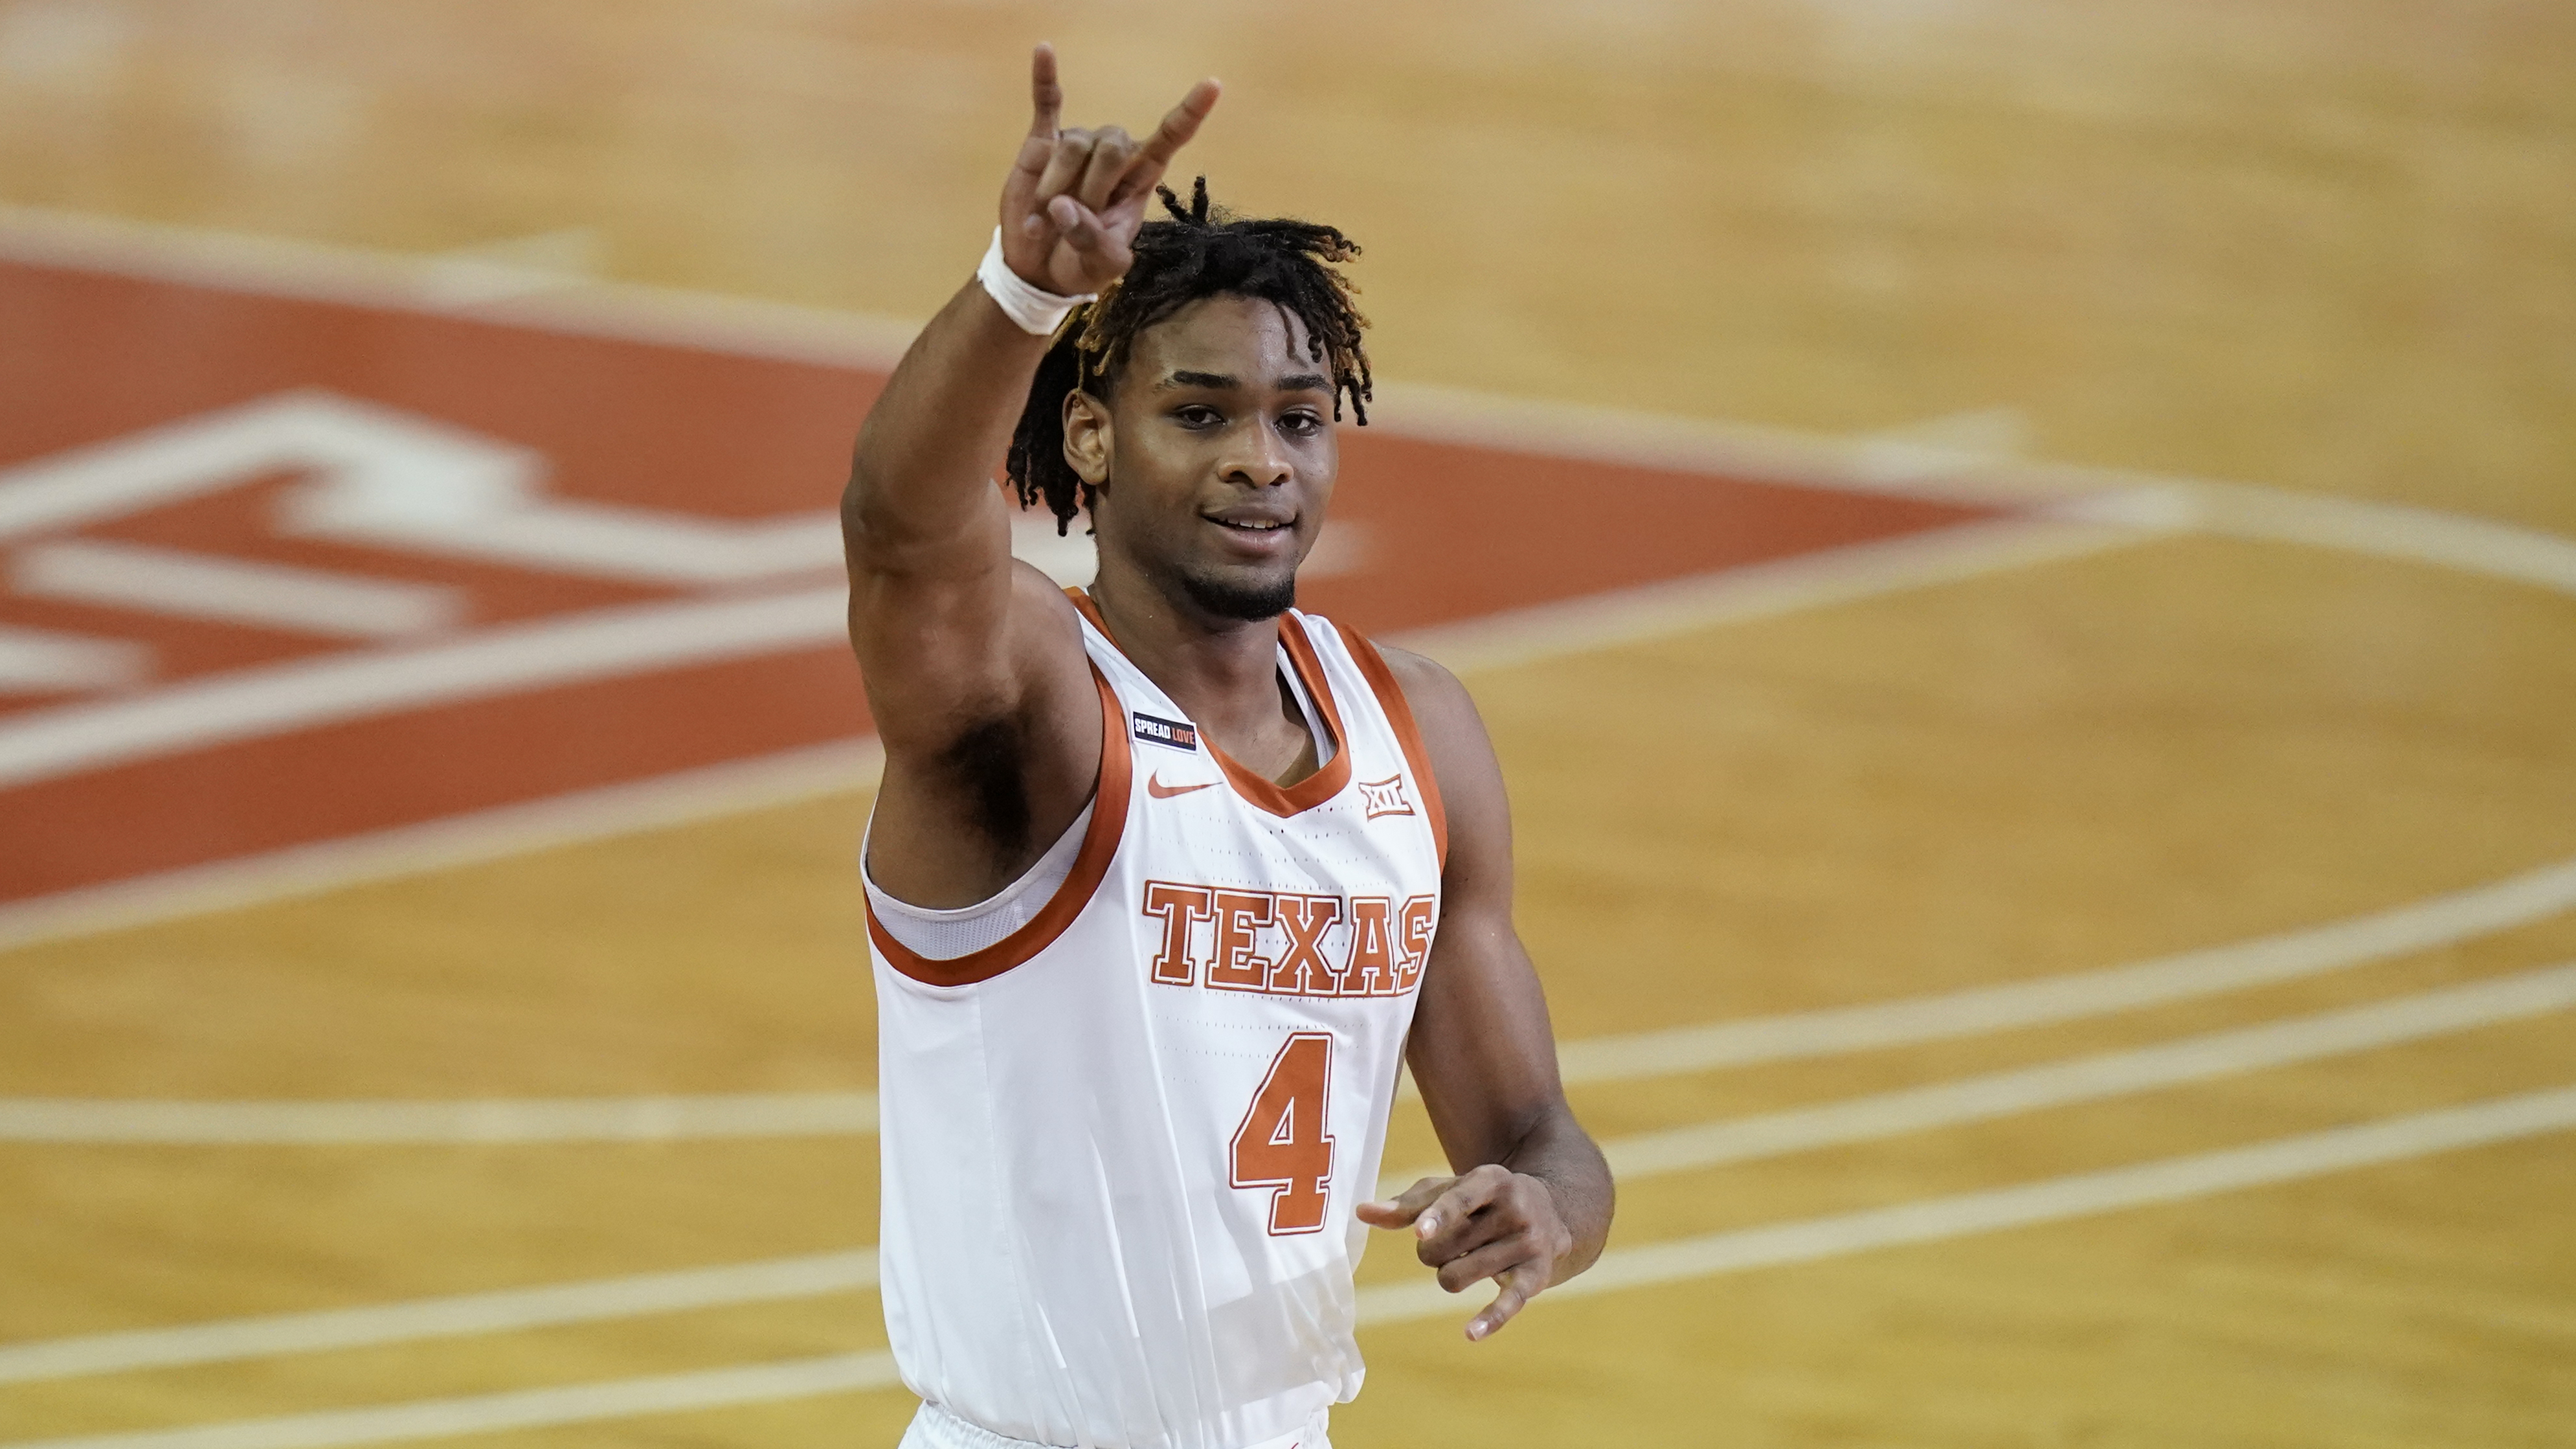 Texas forward Greg Brown (4) during the first half of an NCAA college basketball game against Oklahoma, Tuesday, Jan. 26, 2021, in Austin, Texas.